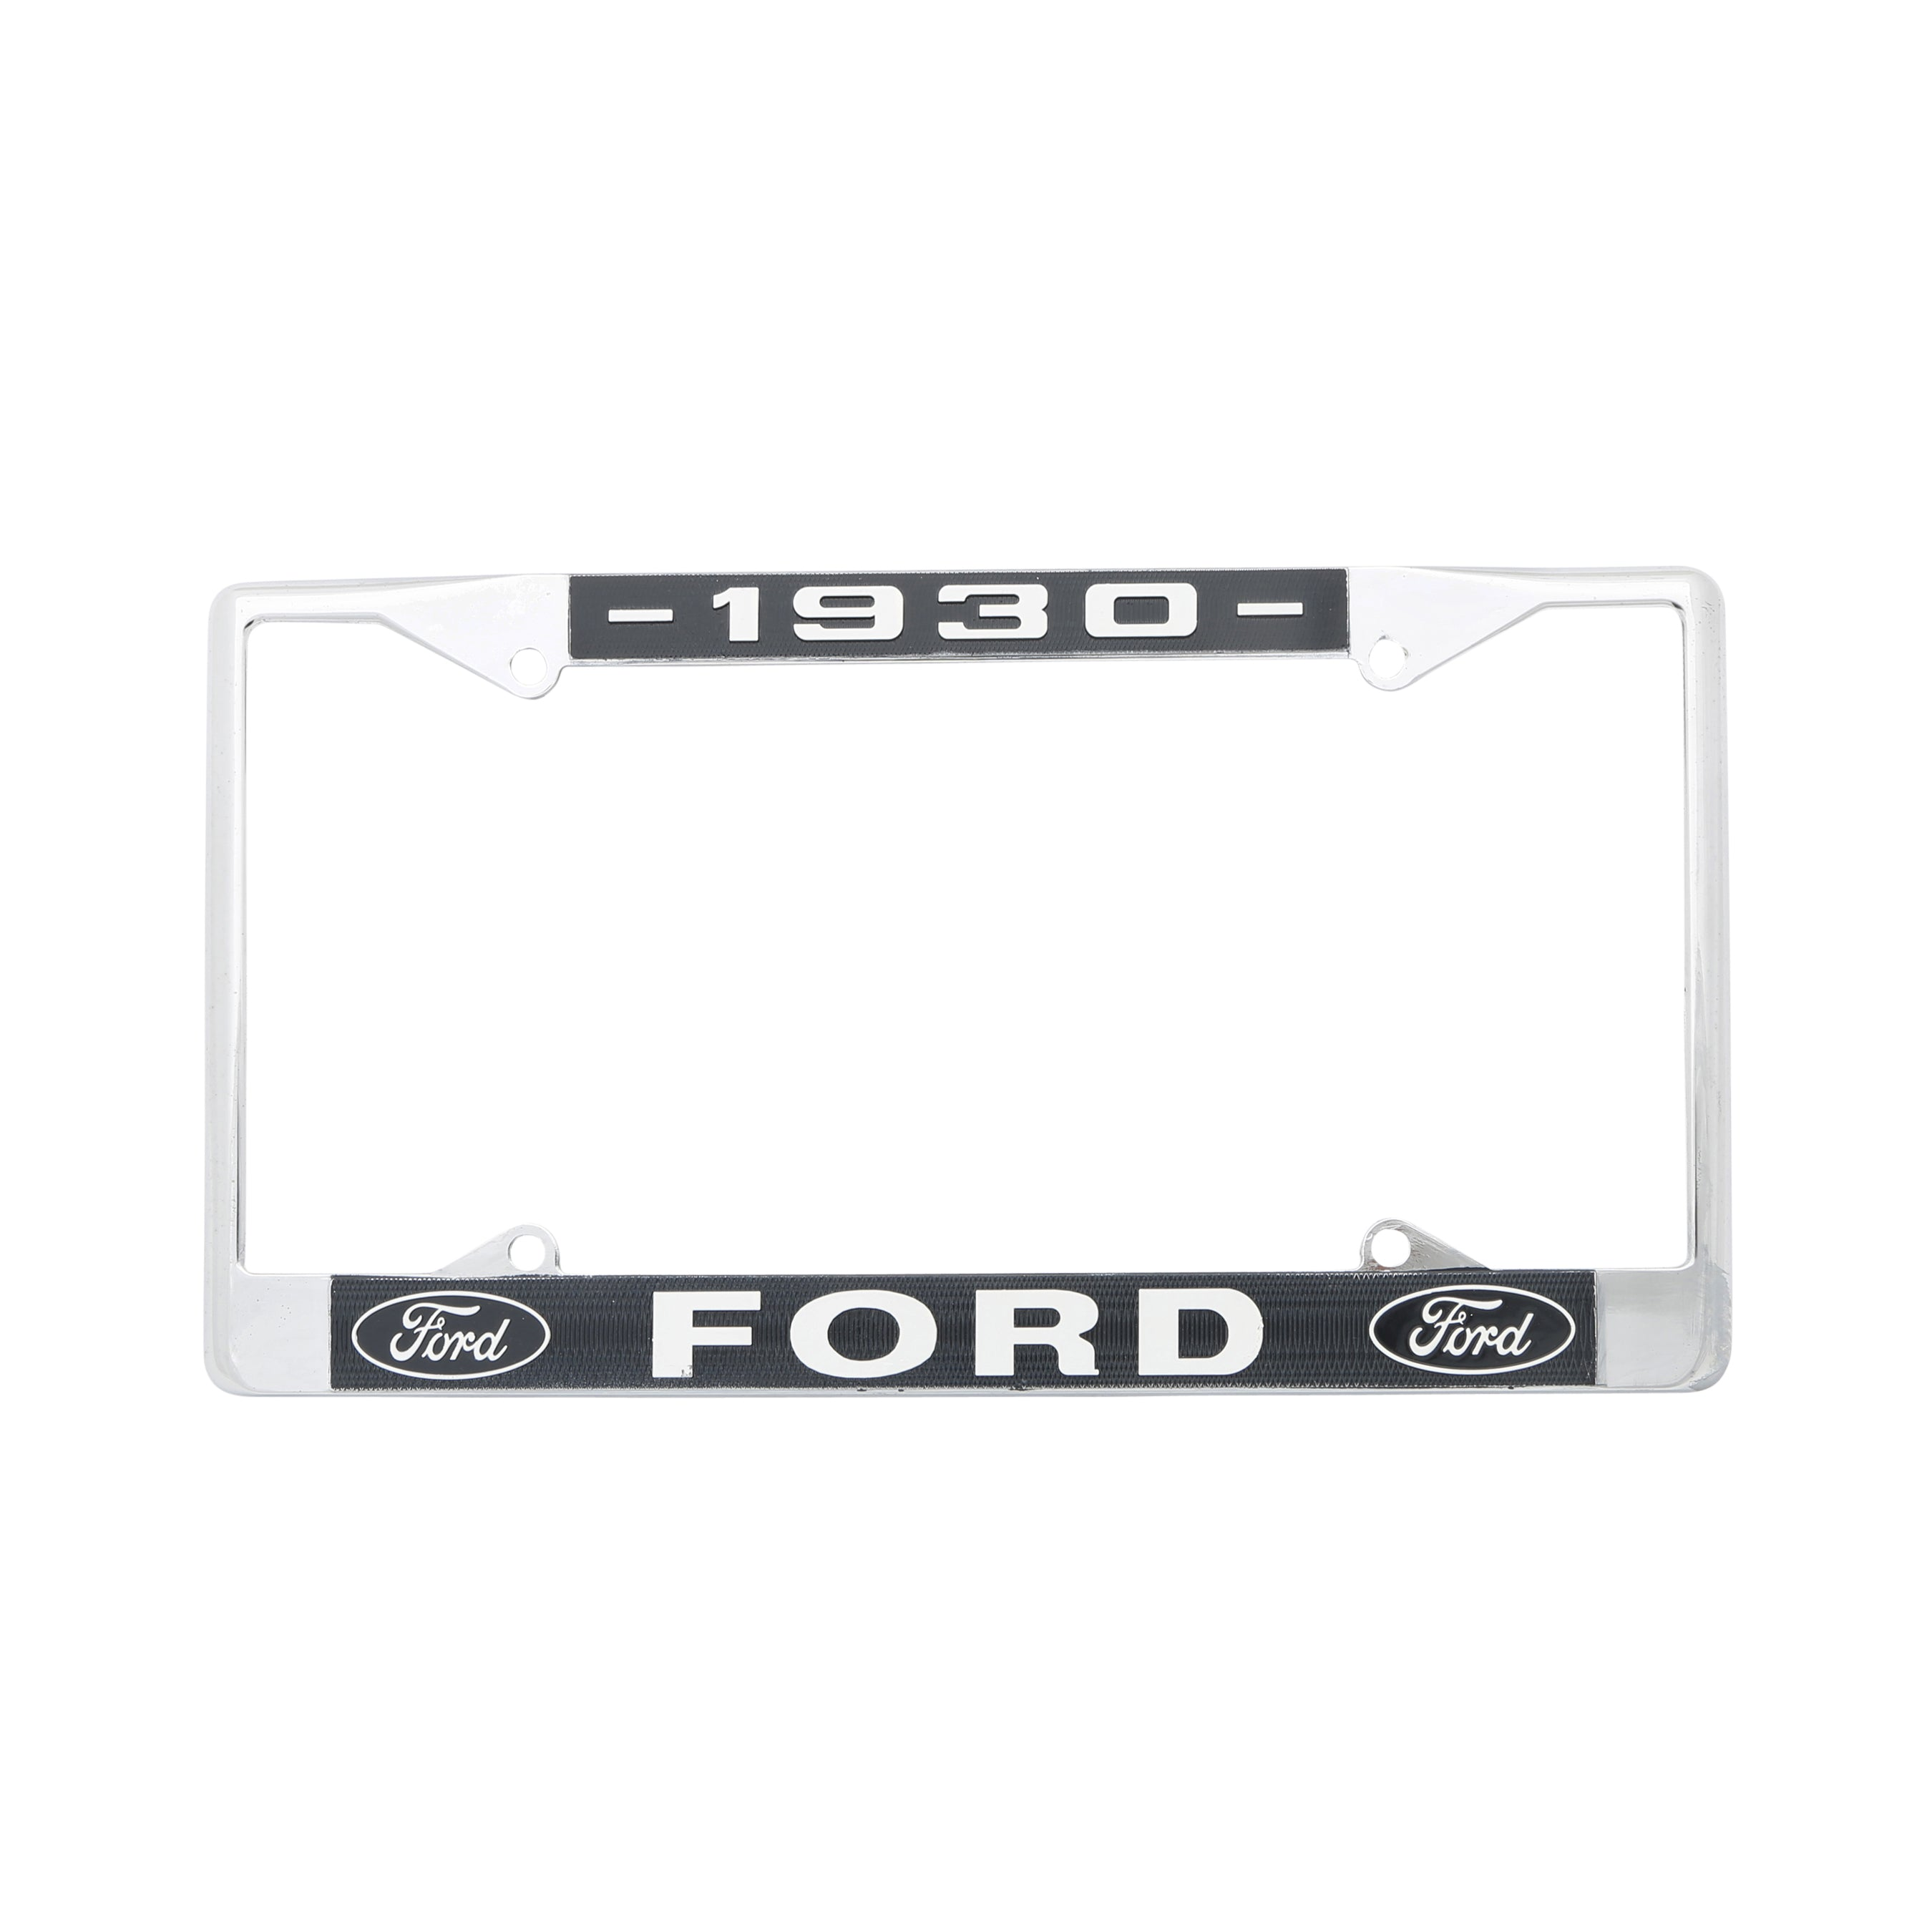 Rear License Plate Frame • 1930